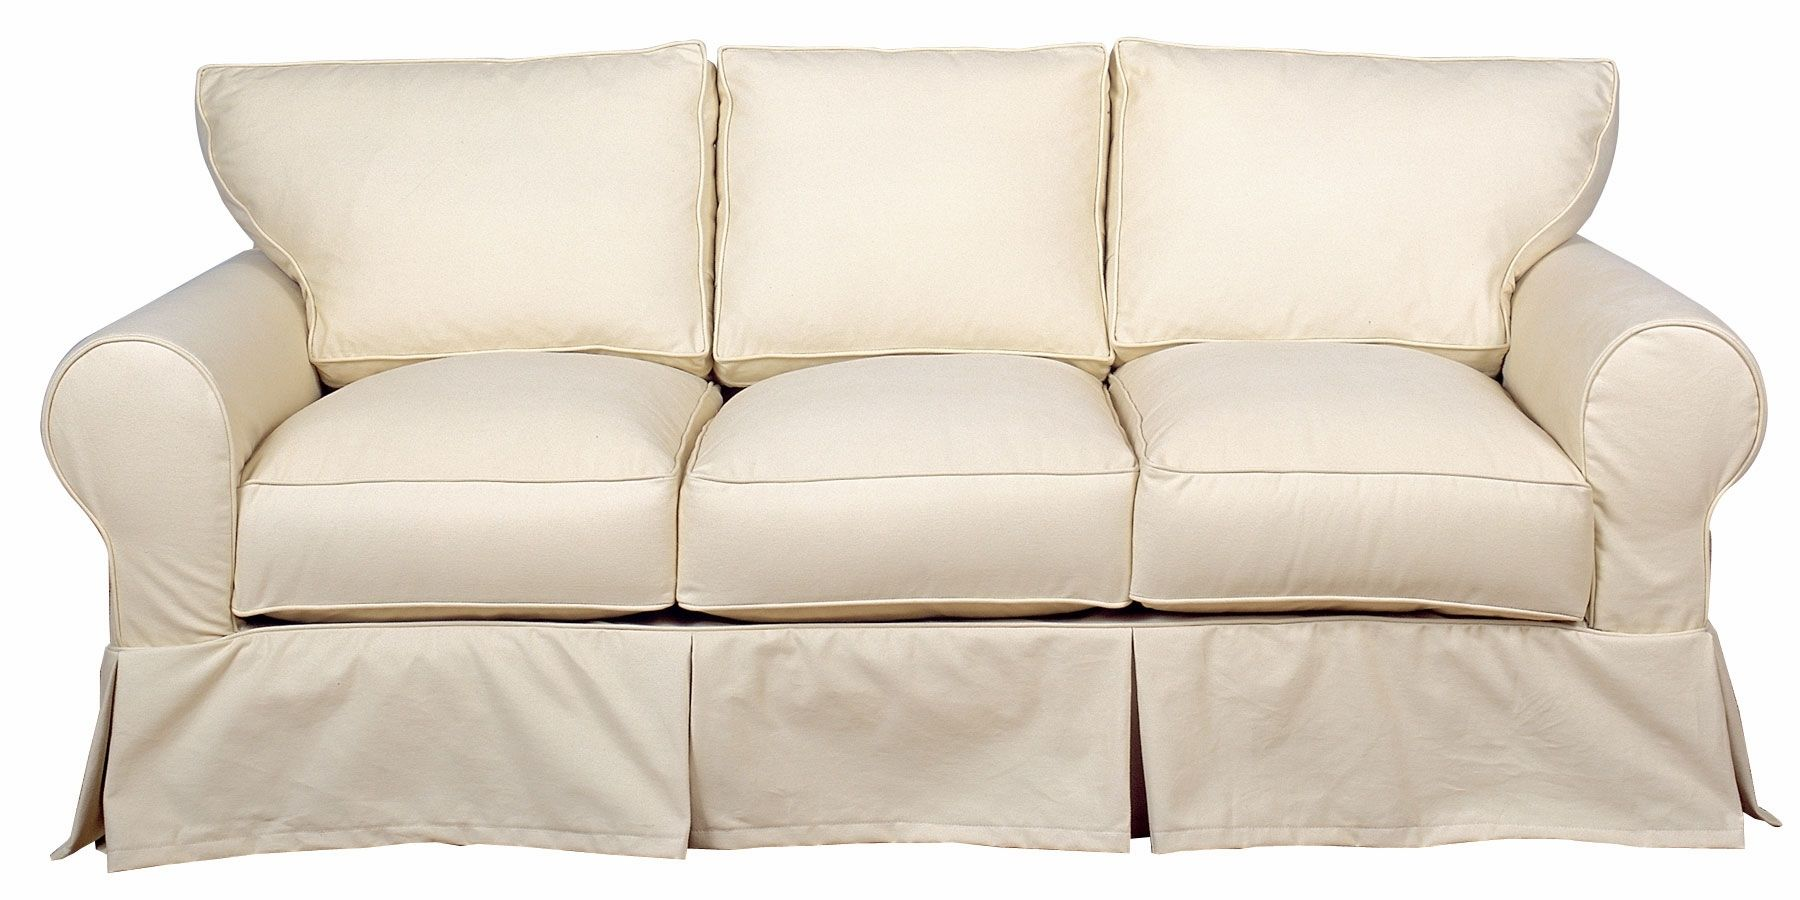 best of slipcovers for sofas with cushions online-Luxury Slipcovers for sofas with Cushions Decoration